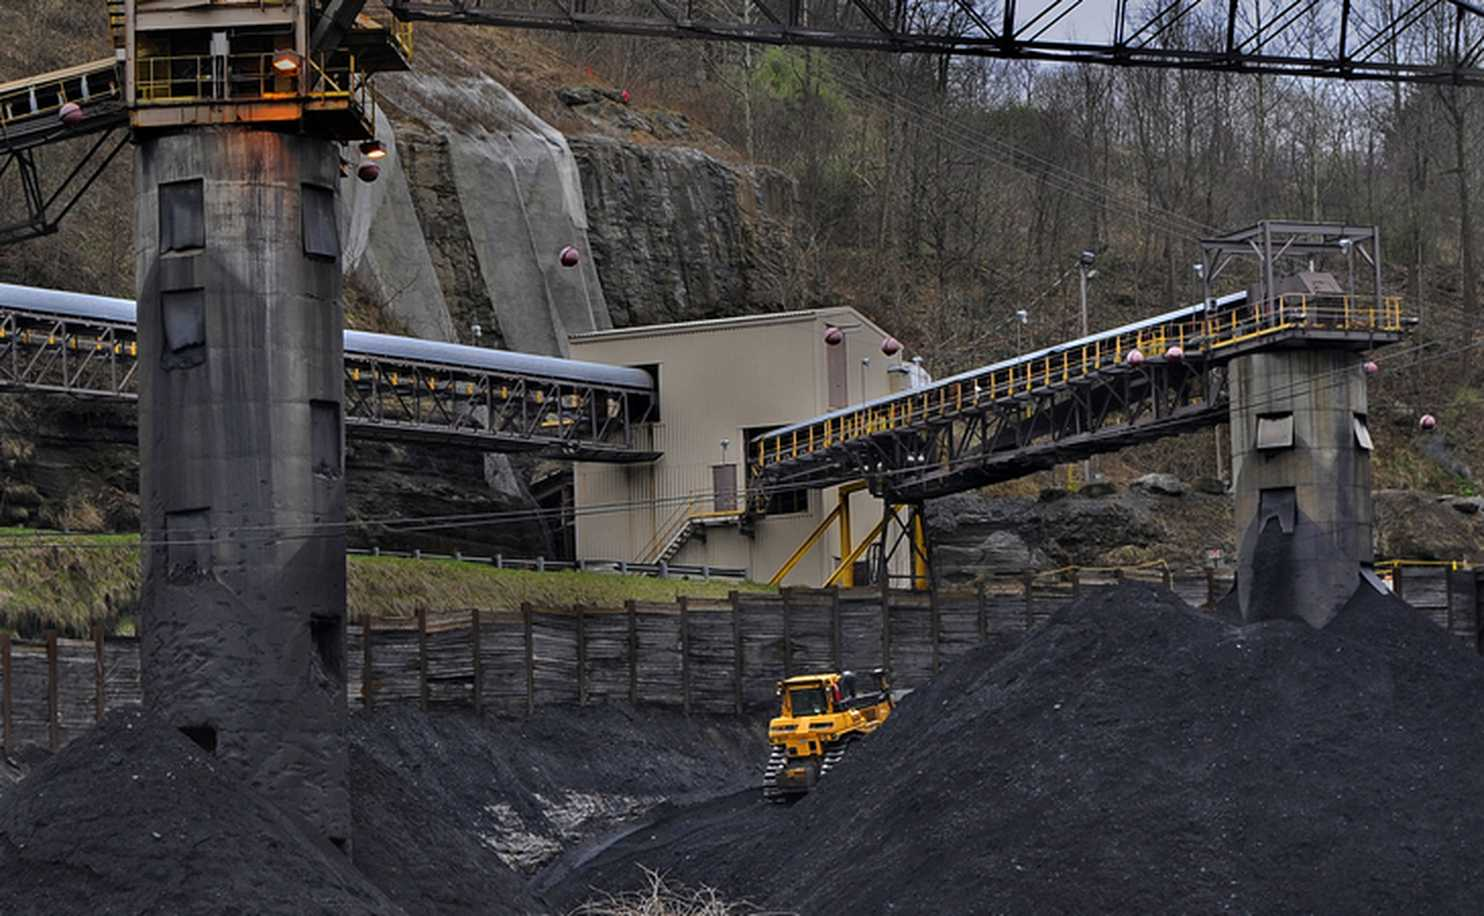 The coal industry is declining.